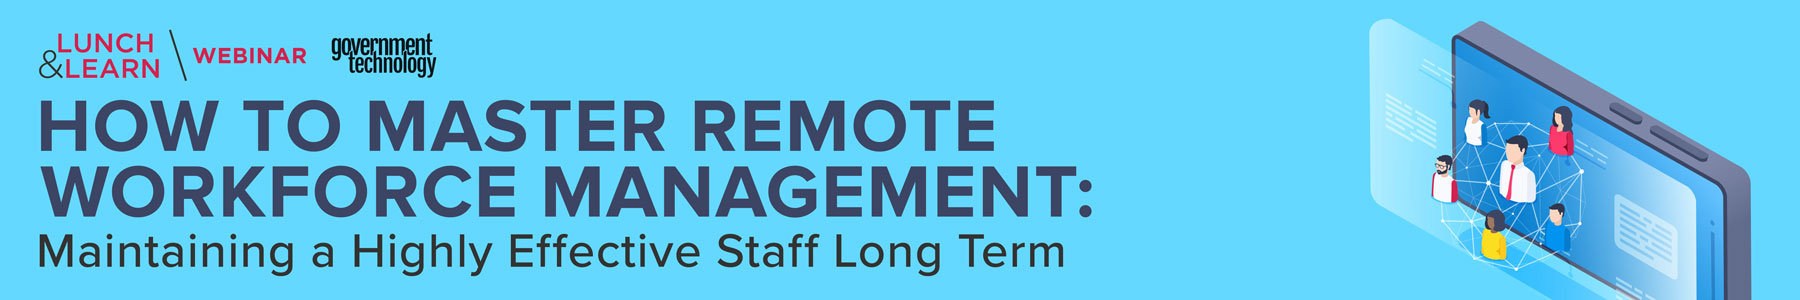 How to Master Remote Workforce Management: Maintaining a Highly Effective Staff Long Term